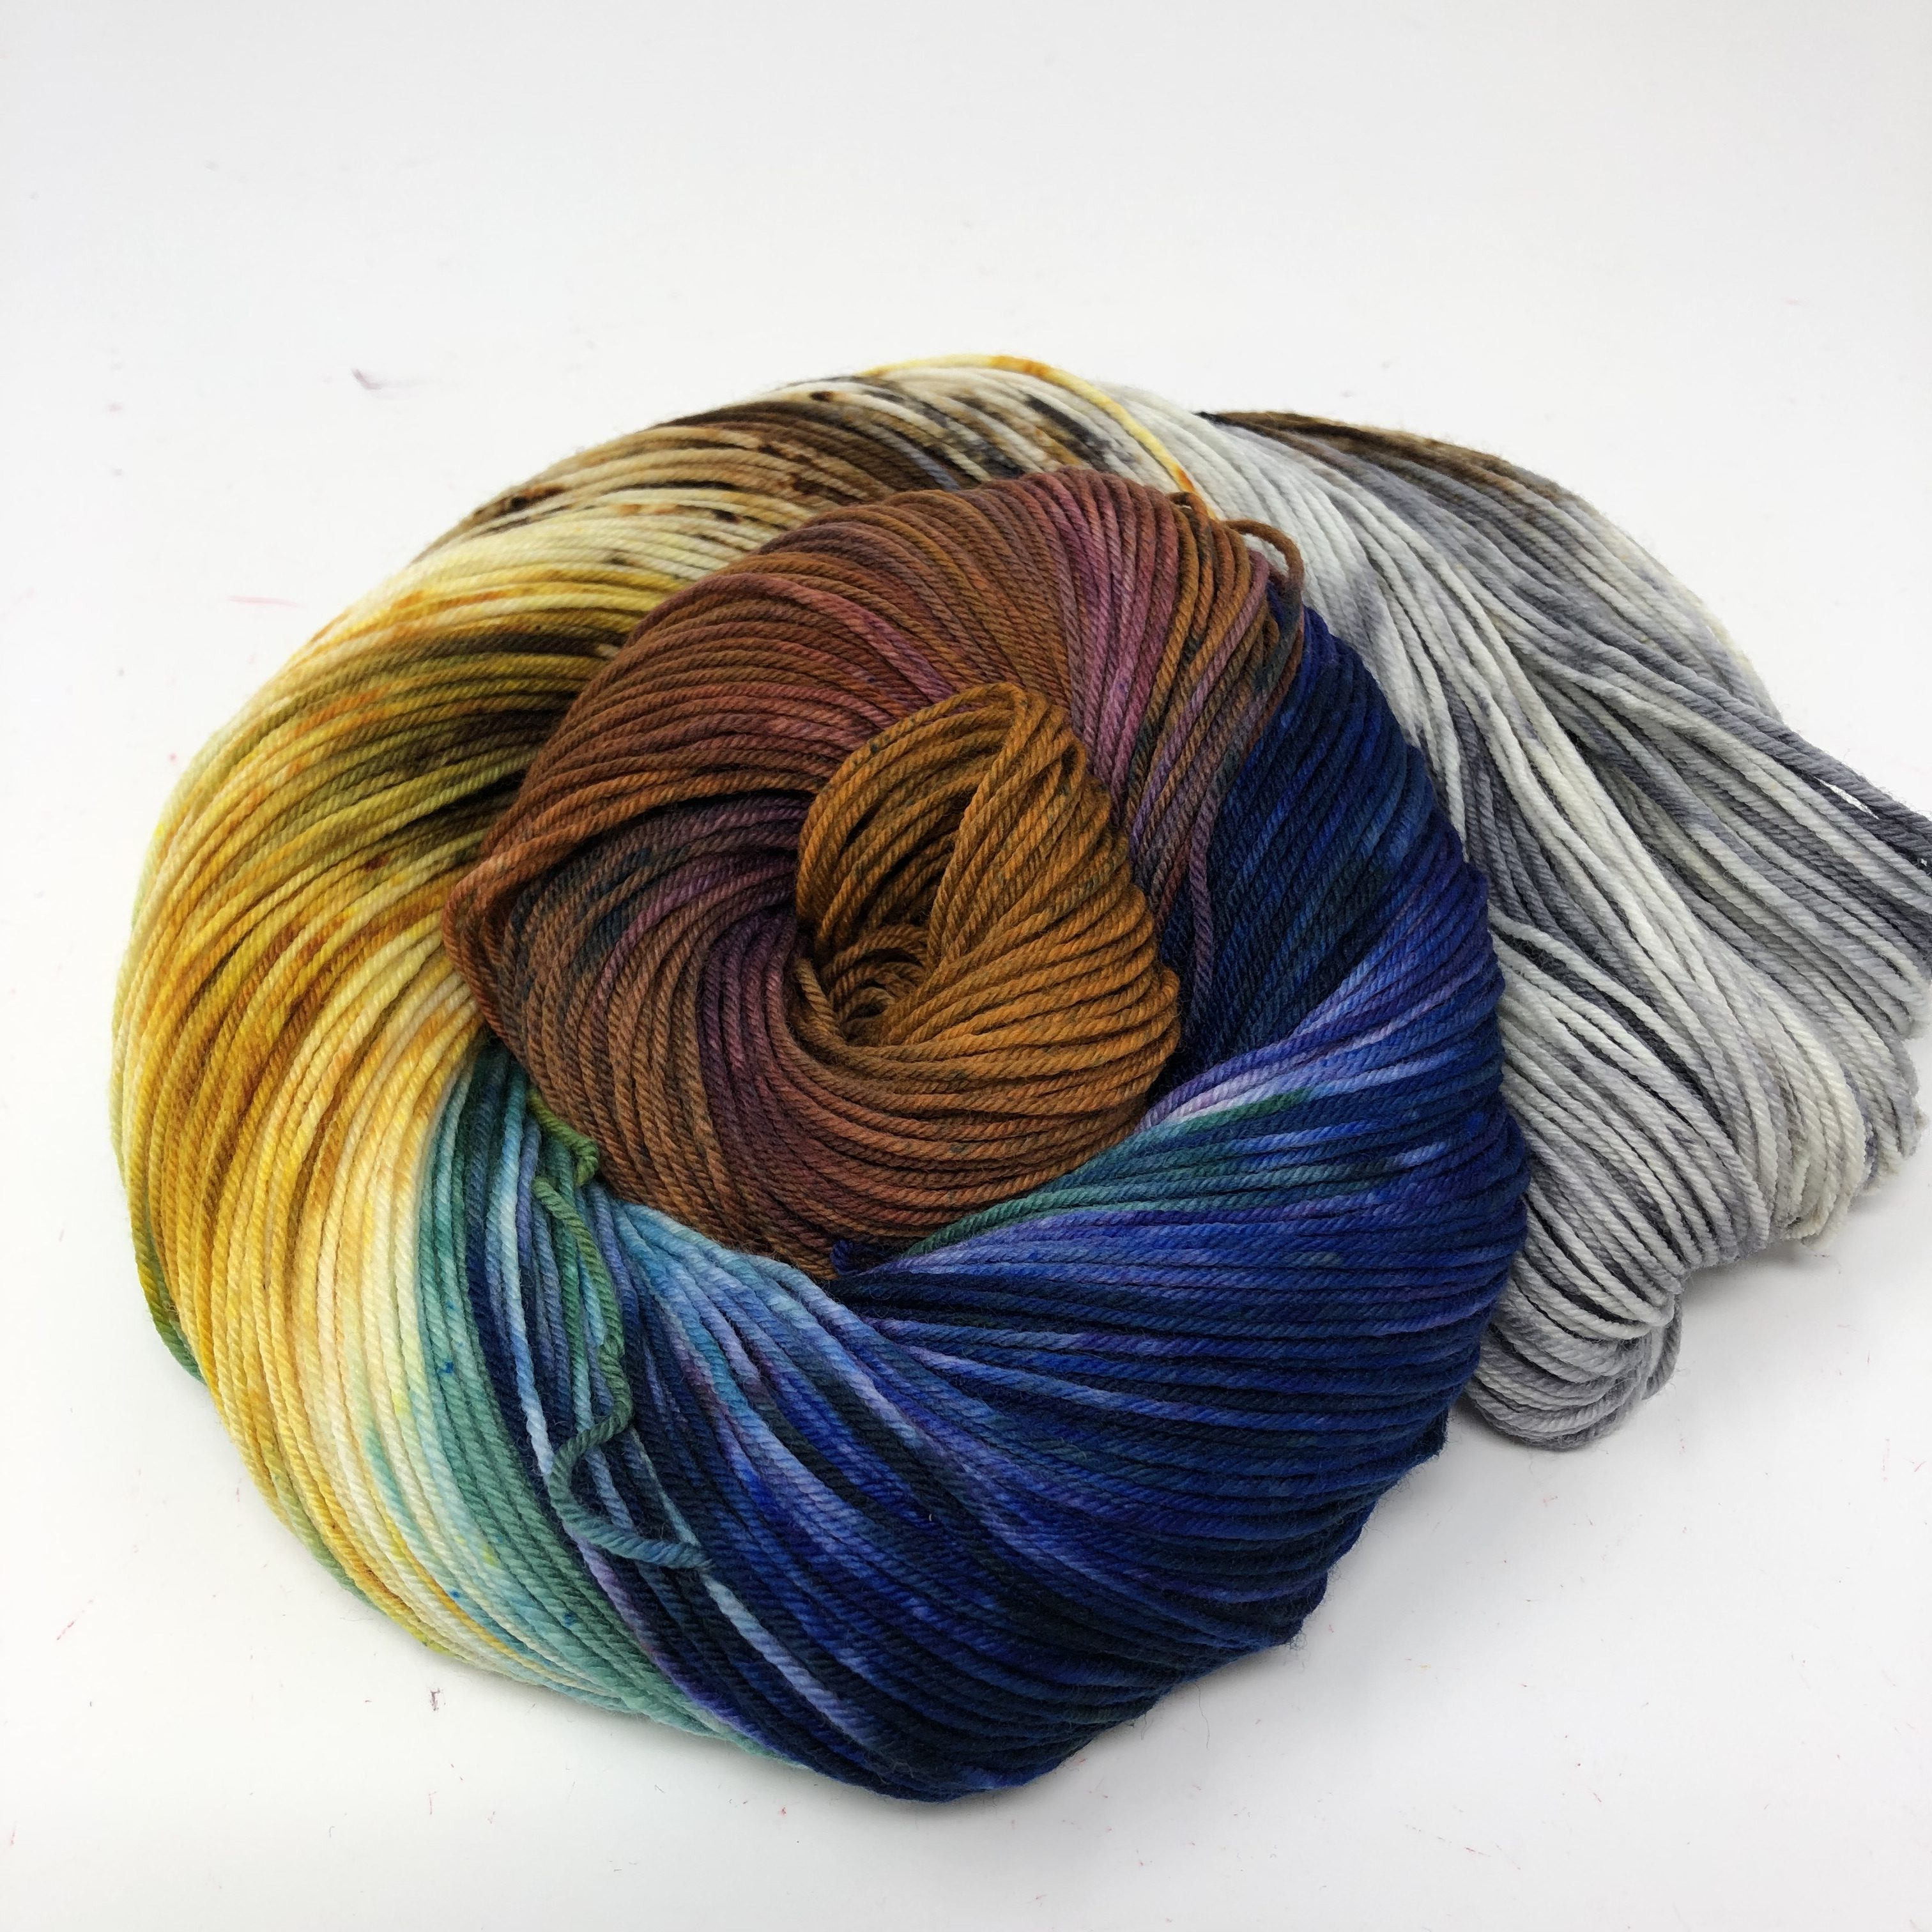 Skein of our National Parks colorway Joshua Tree in Sock